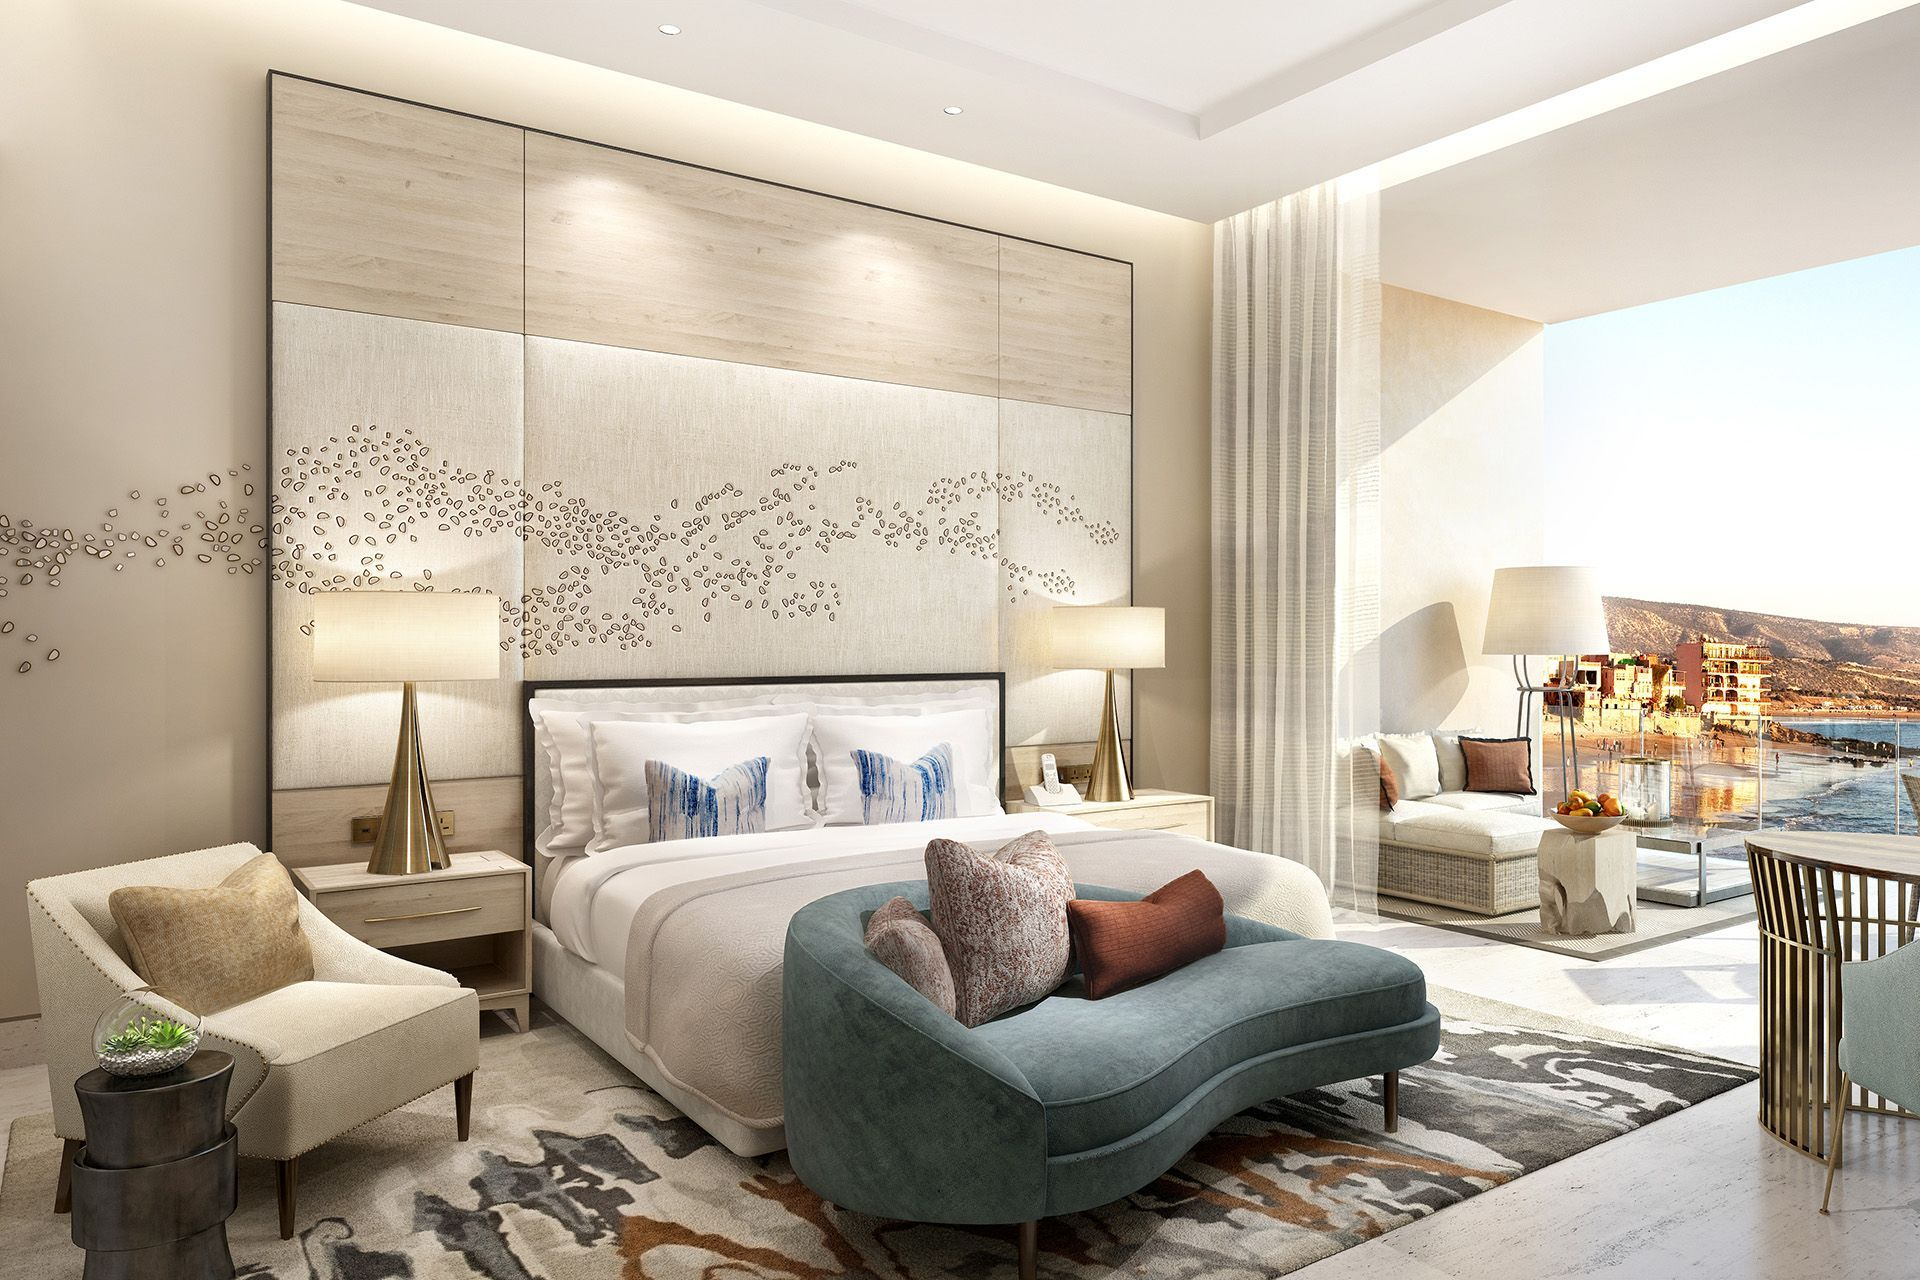 Four seasons taghazout interior designers wimberly for Best bedroom decor ideas